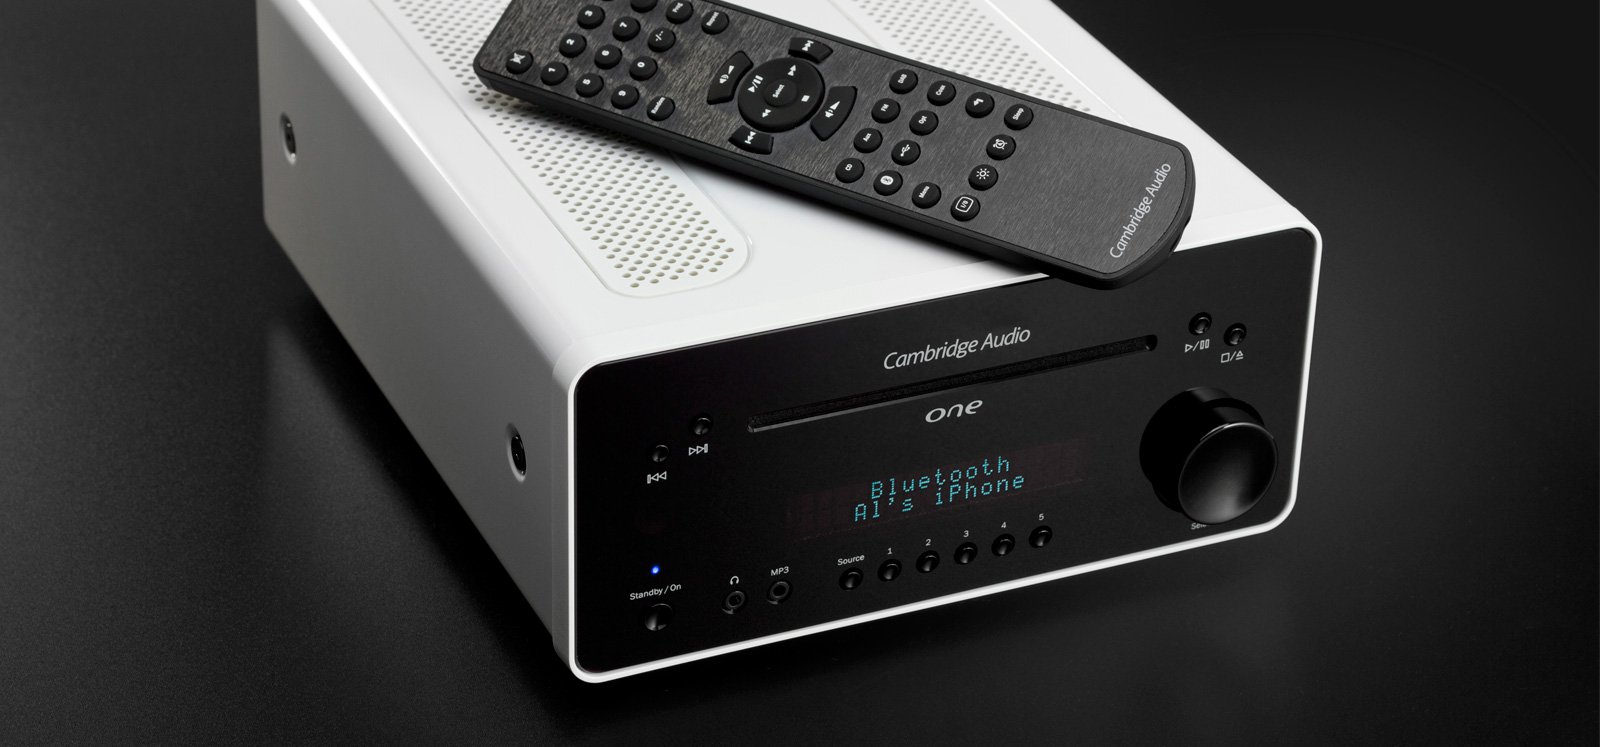 ONE  All in One Music System  Cambridge Audio